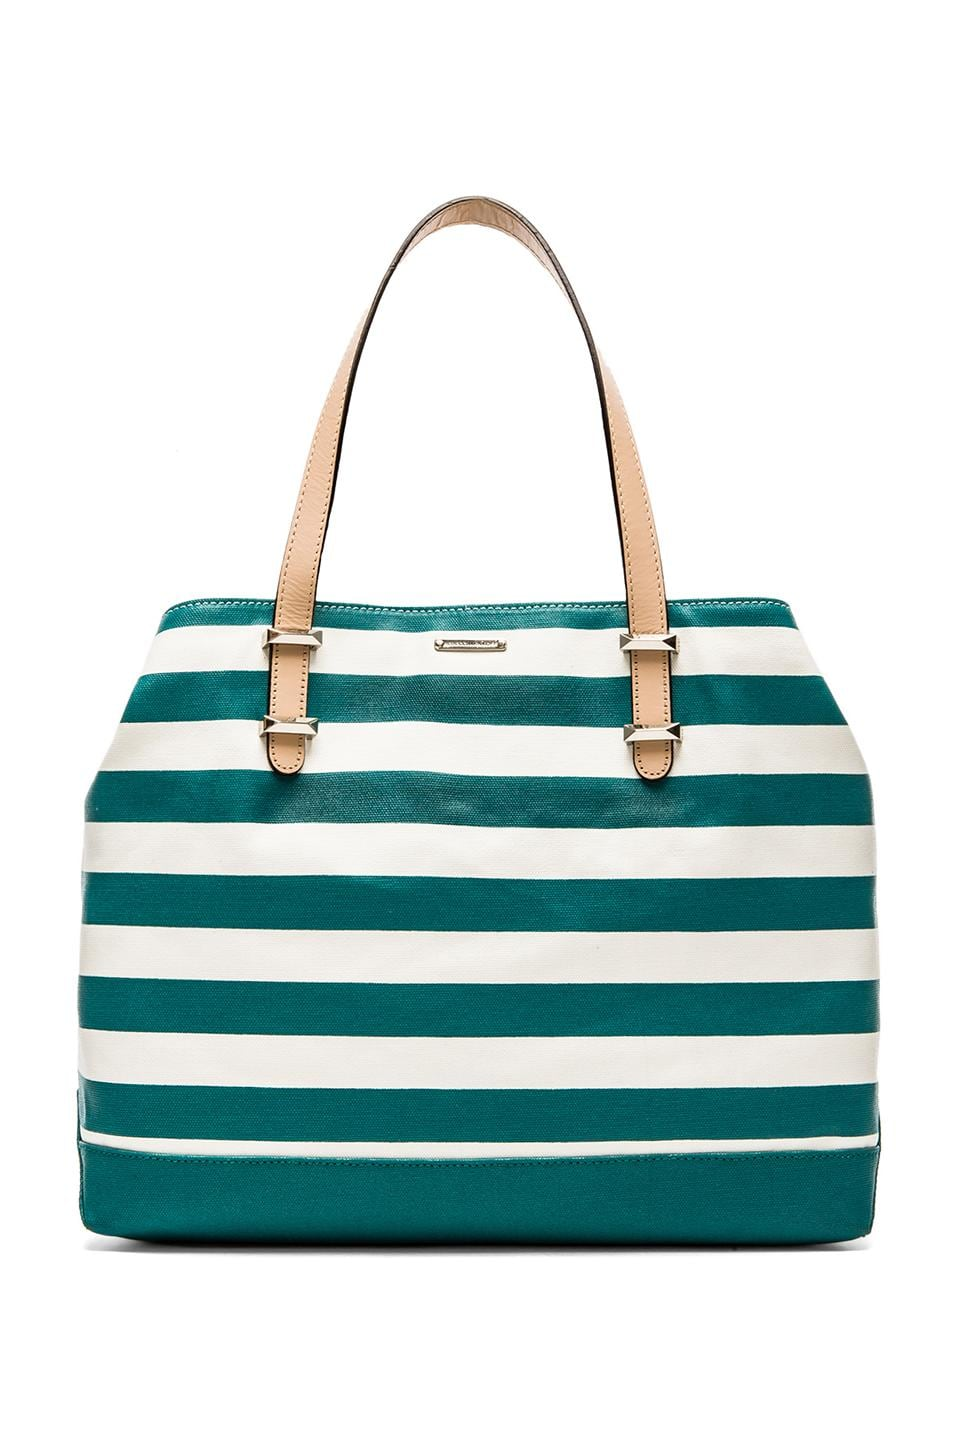 Rebecca Minkoff Cherish Tote in Teal Stripe